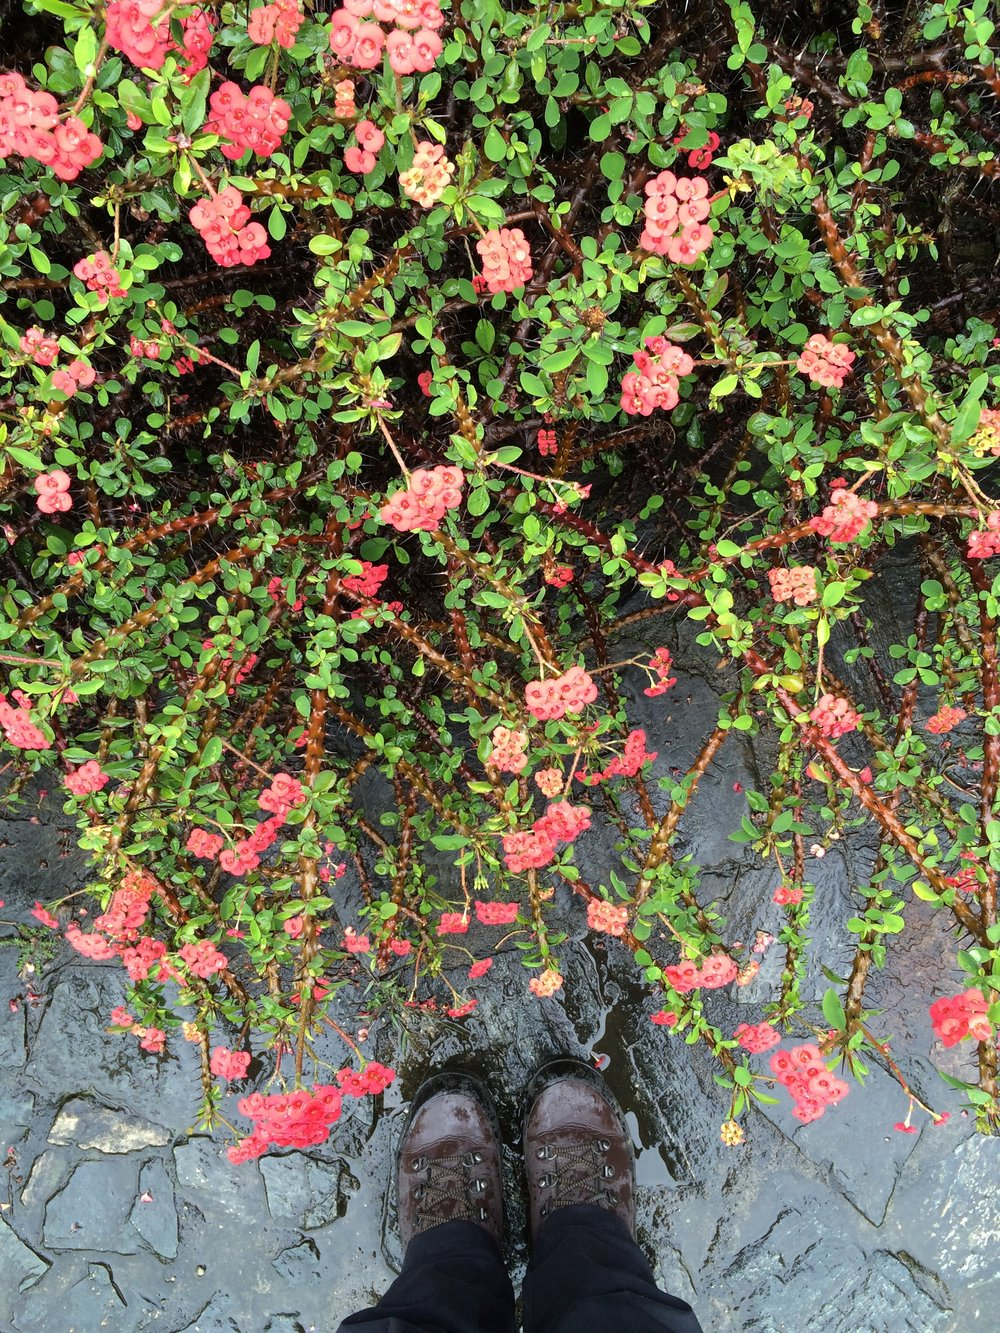 Vibrant Flowers Doused in Rainwater at the Medellín Botanical Gardens in Colombia